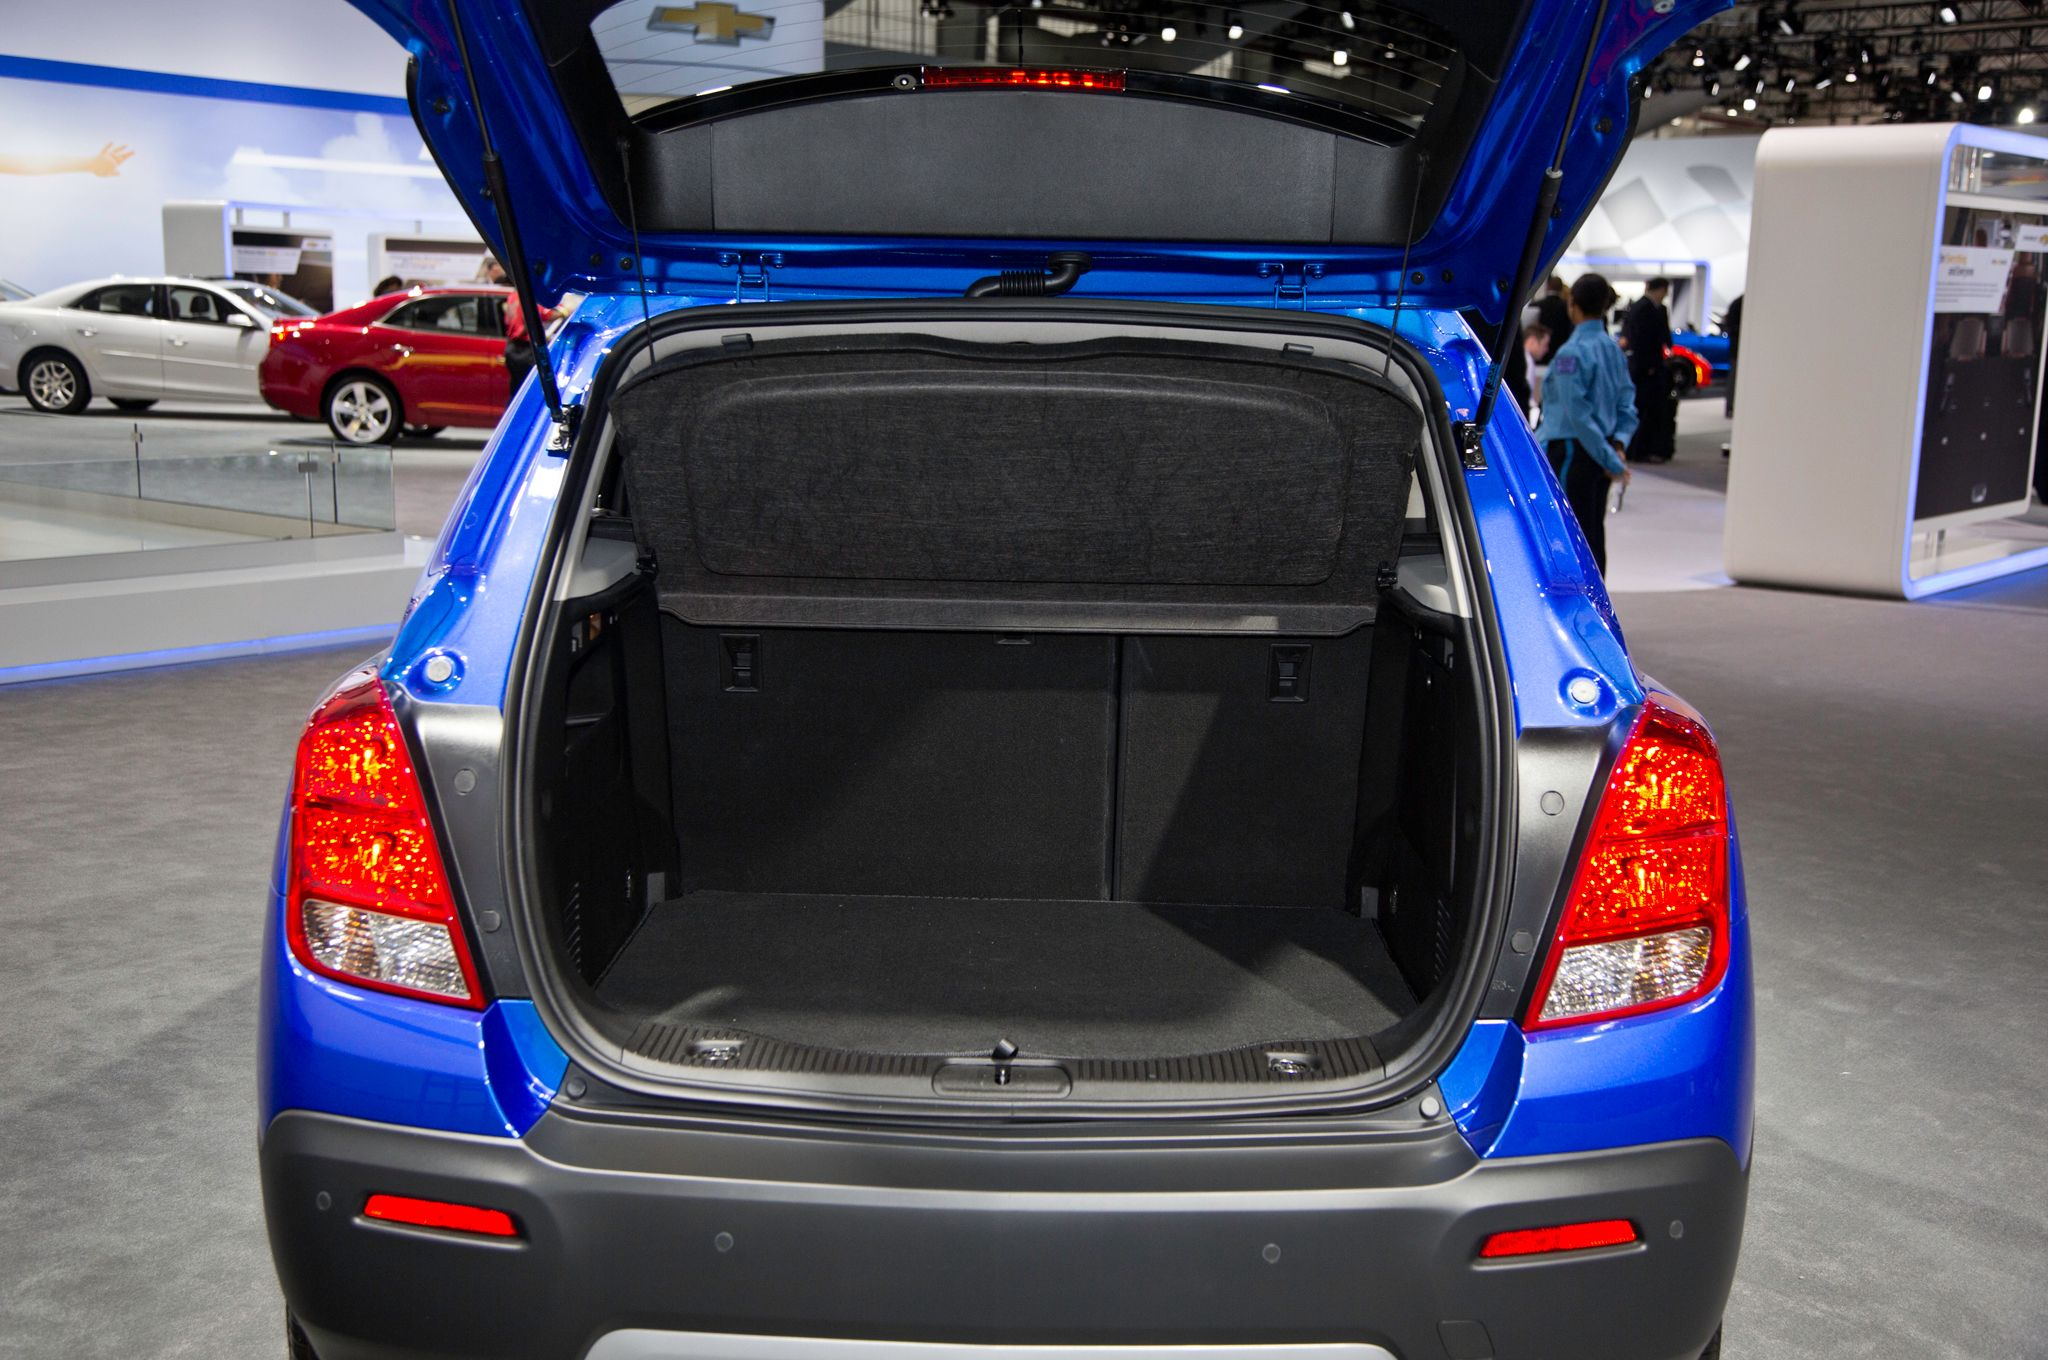 2019 Chevy Trax Trunk Capacity